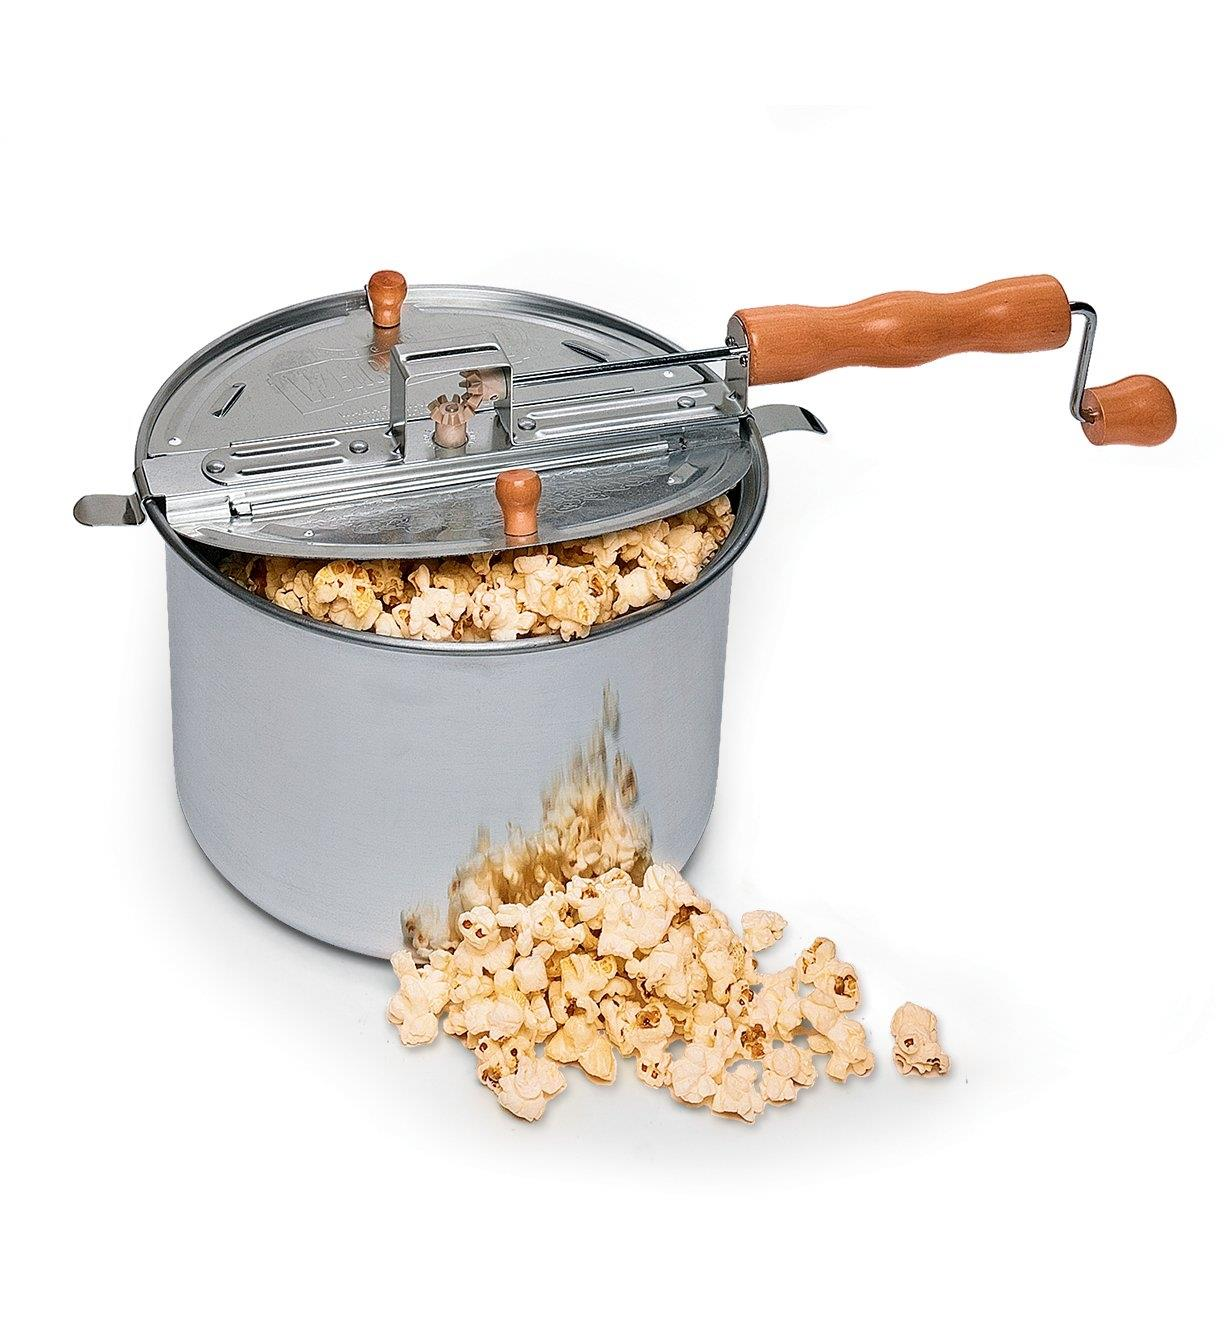 Whirley-Pop Popcorn Popper with popcorn overflowing